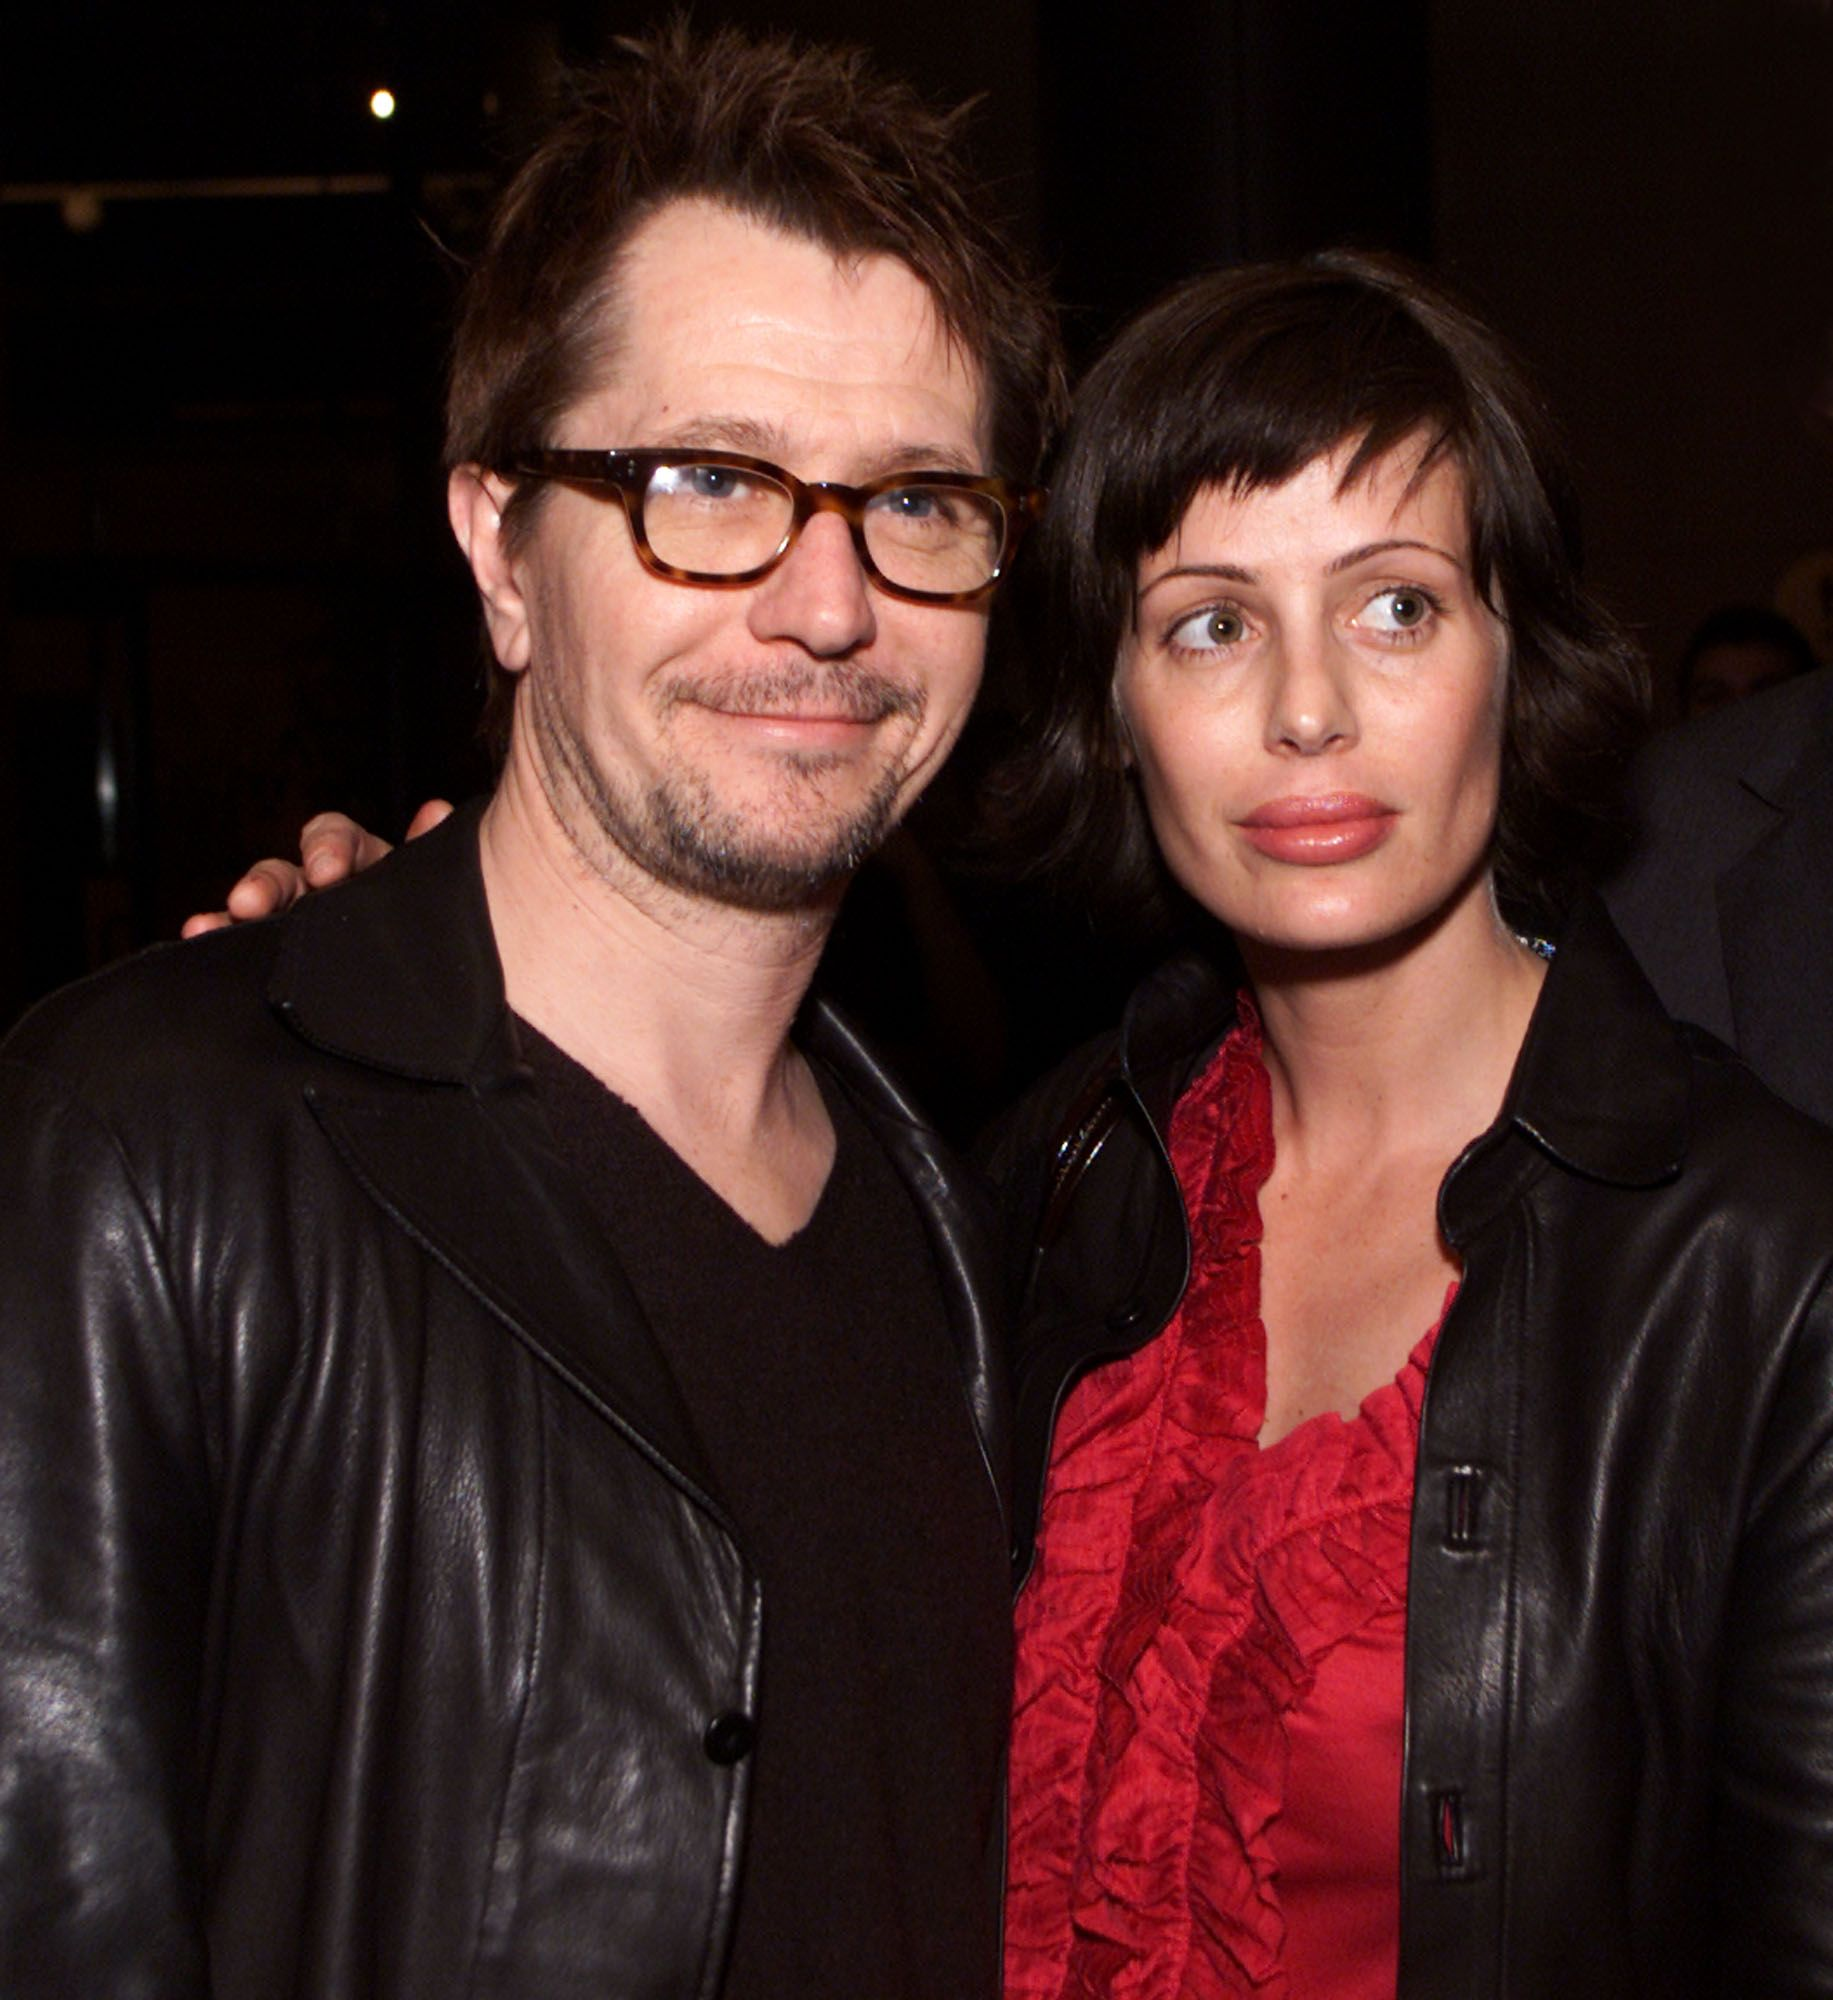 Gary Oldman and Donya Fiorentino at the premiere of 'Before Night Falls' in 2000 in  Los Angeles   Source: Getty Images